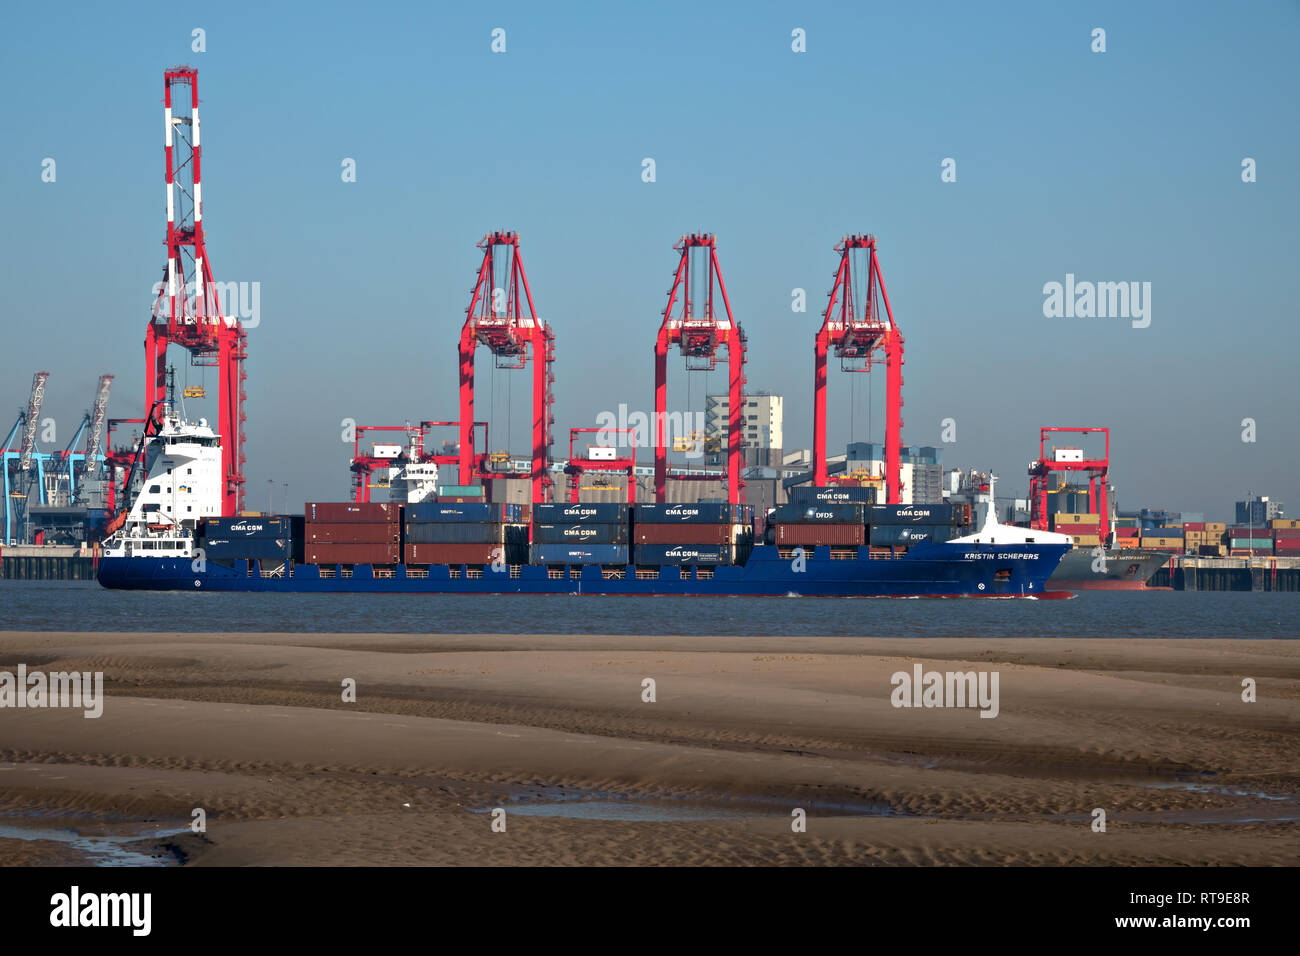 Container ship KRISTIN SCHEPERS on the River Mersey Liverpool UK. Stock Photo